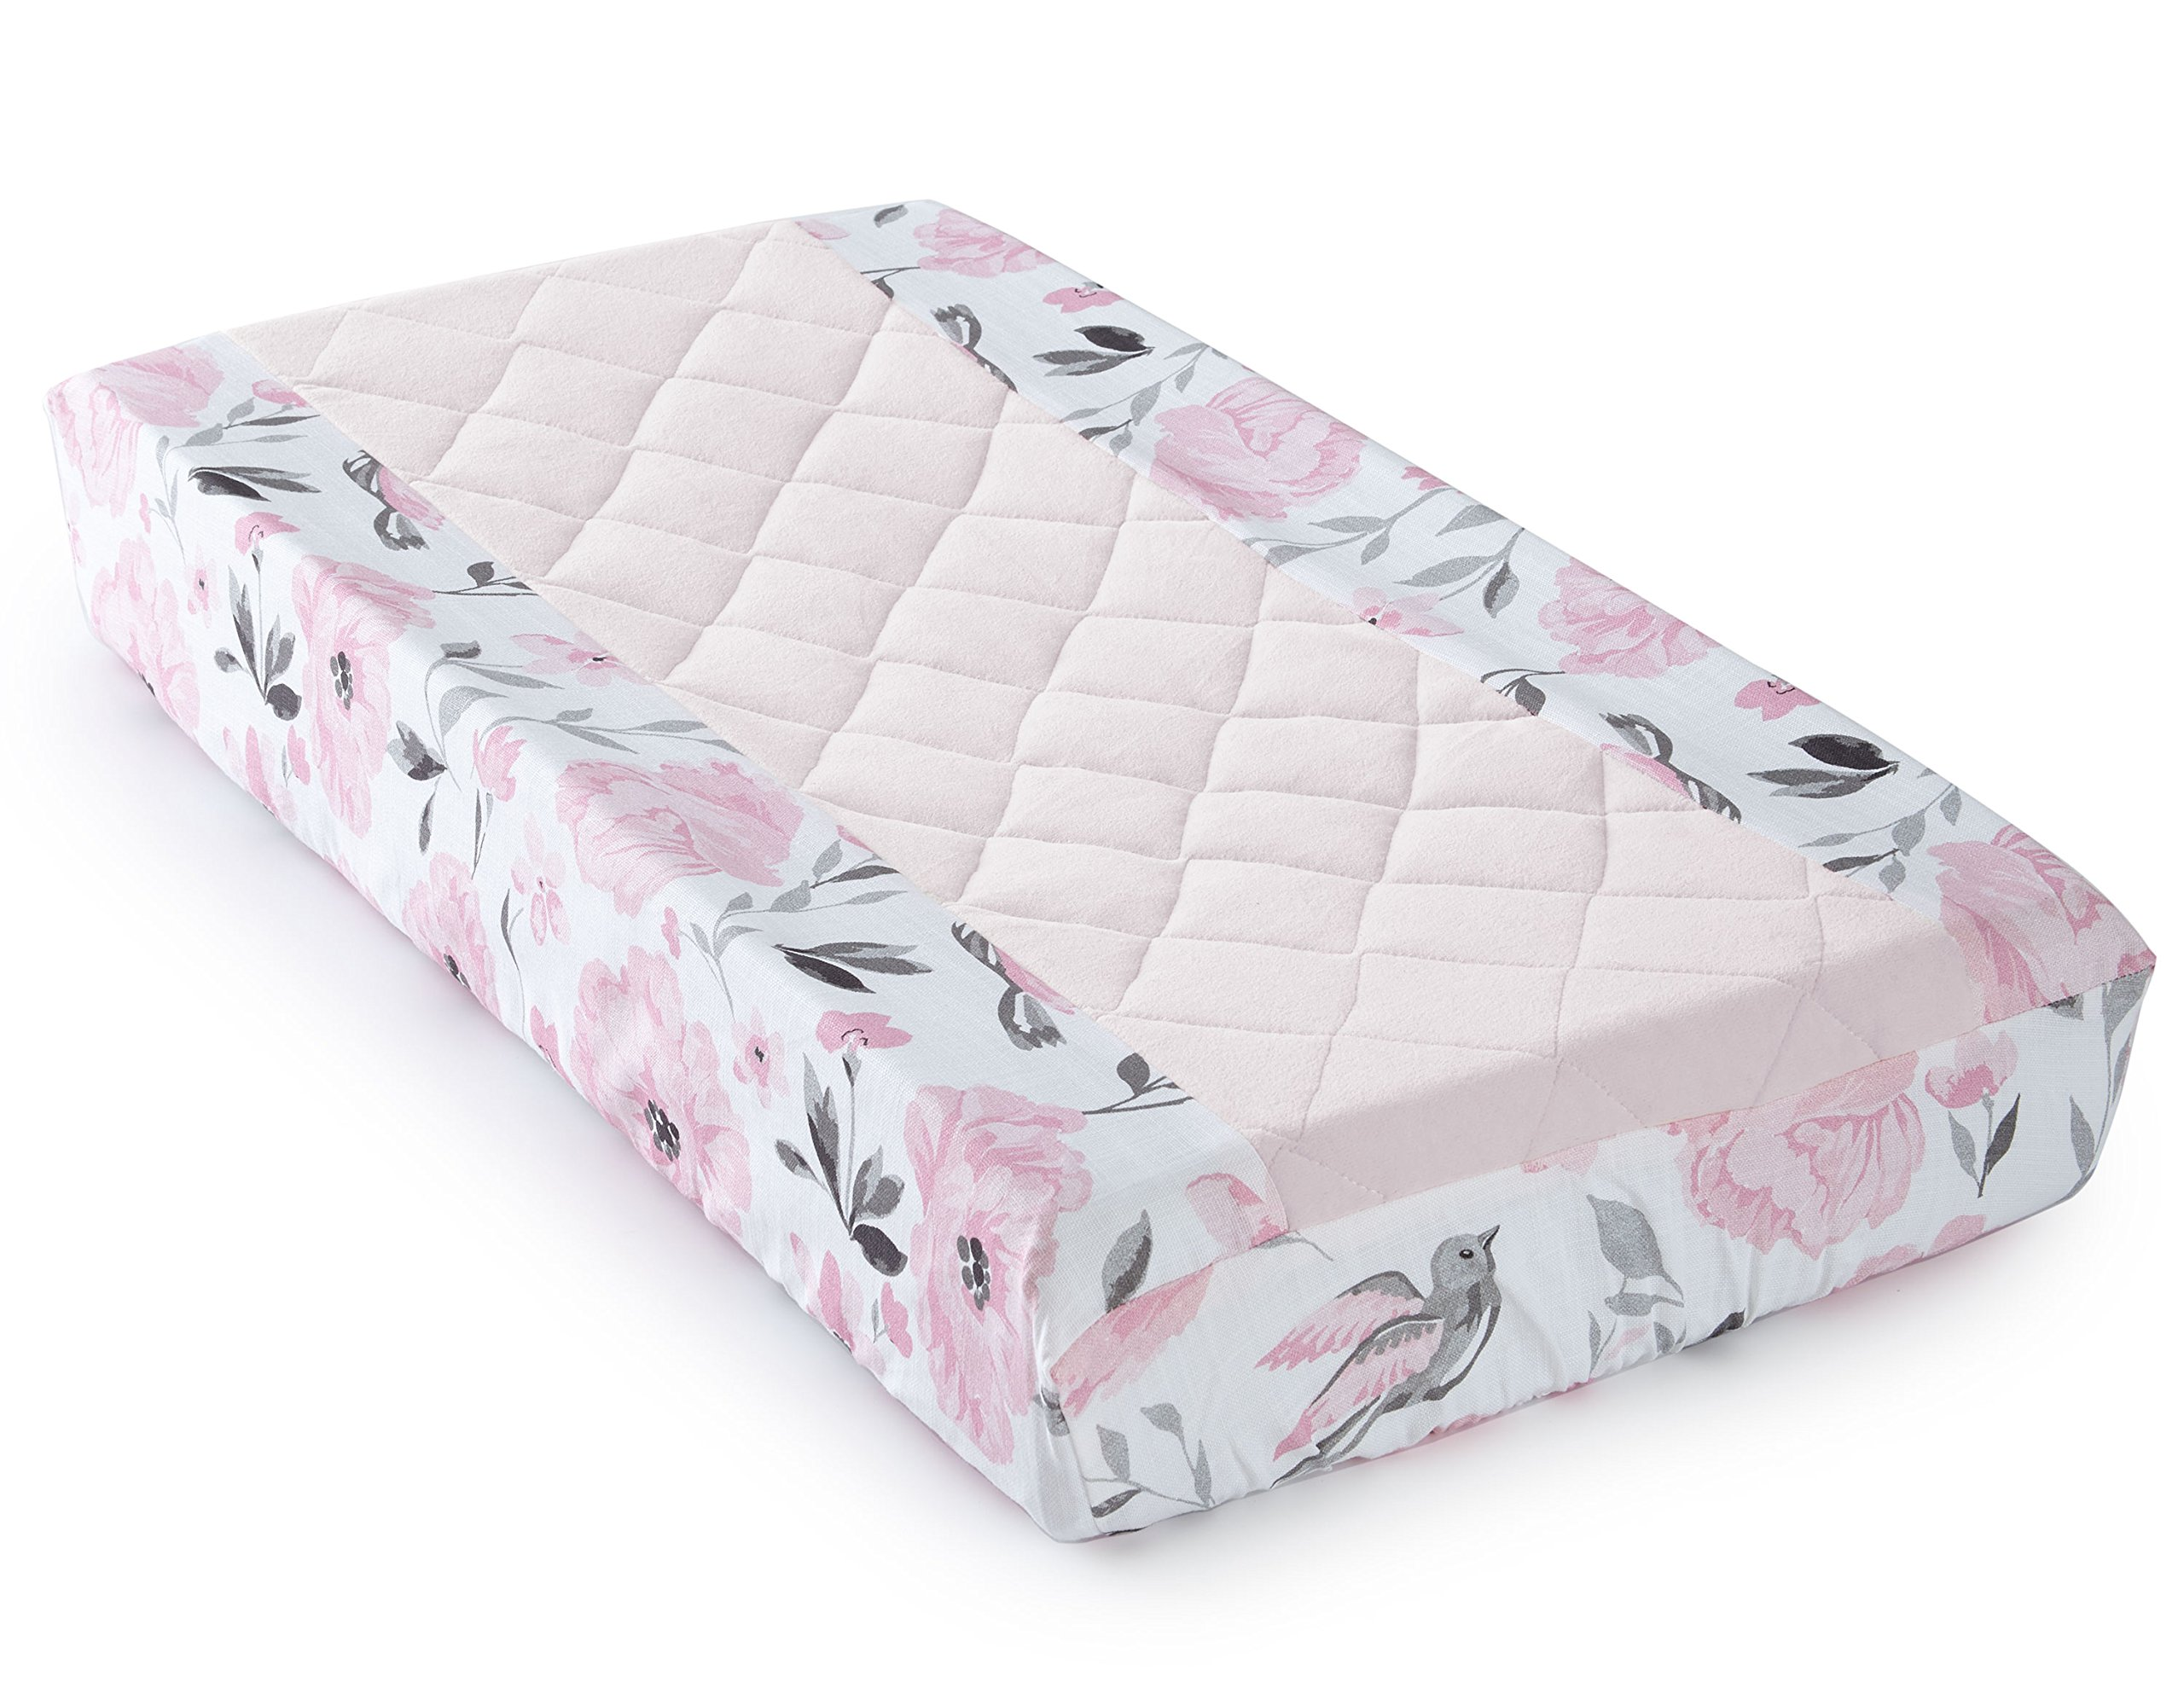 Amazon Com Levtex Baby Elise Grey And Pink Floral 5 Piece Crib Bedding Set Quilt 100 Cotton Crib Fitted Sheet 3 Tiered Dust Ruffle Diaper